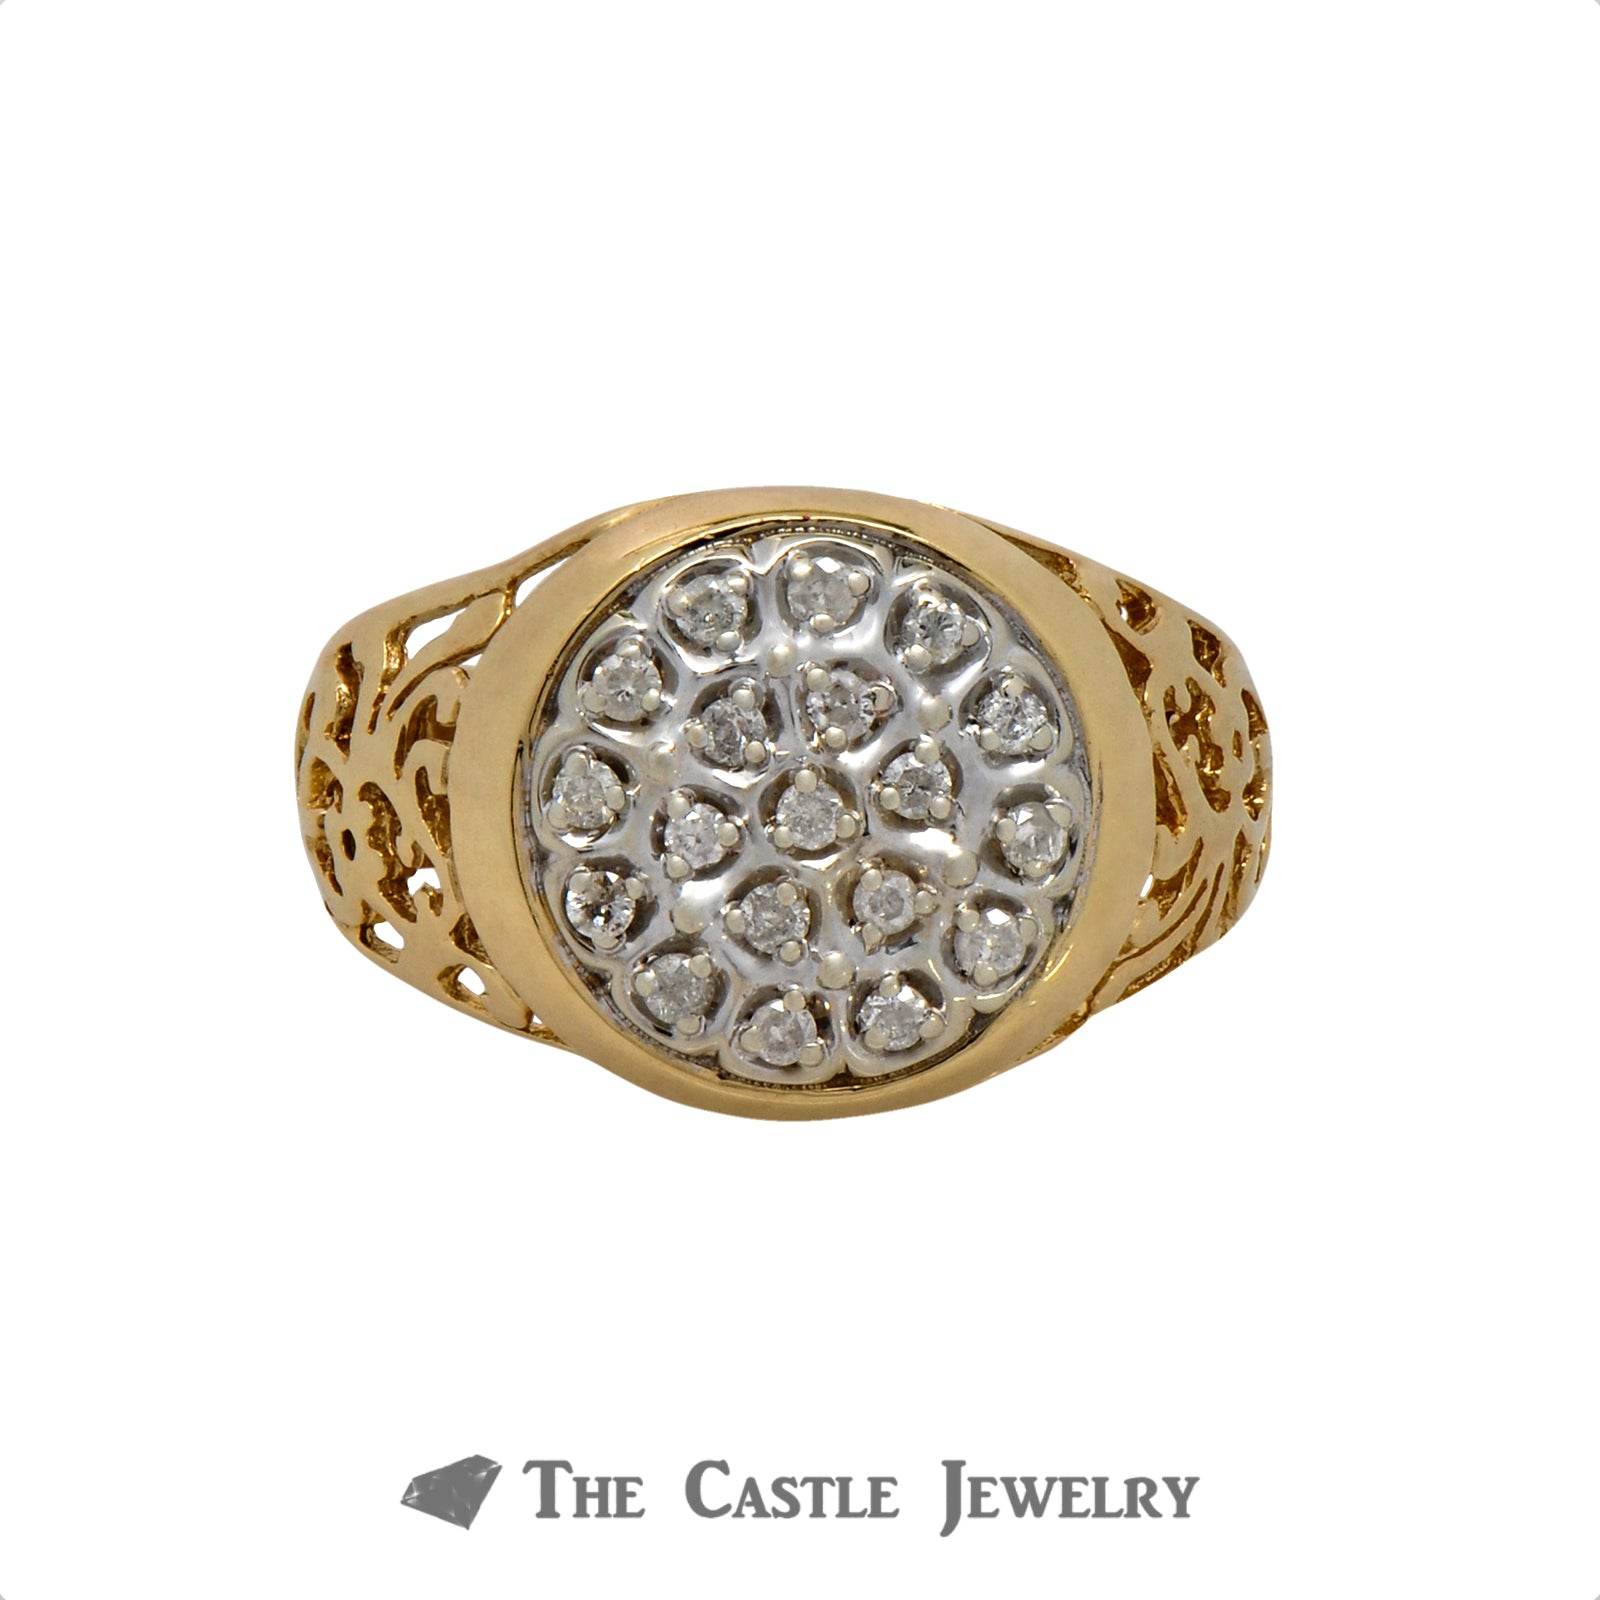 .25cttw Diamond Kentucky Cluster Ring in 10k Yellow Gold